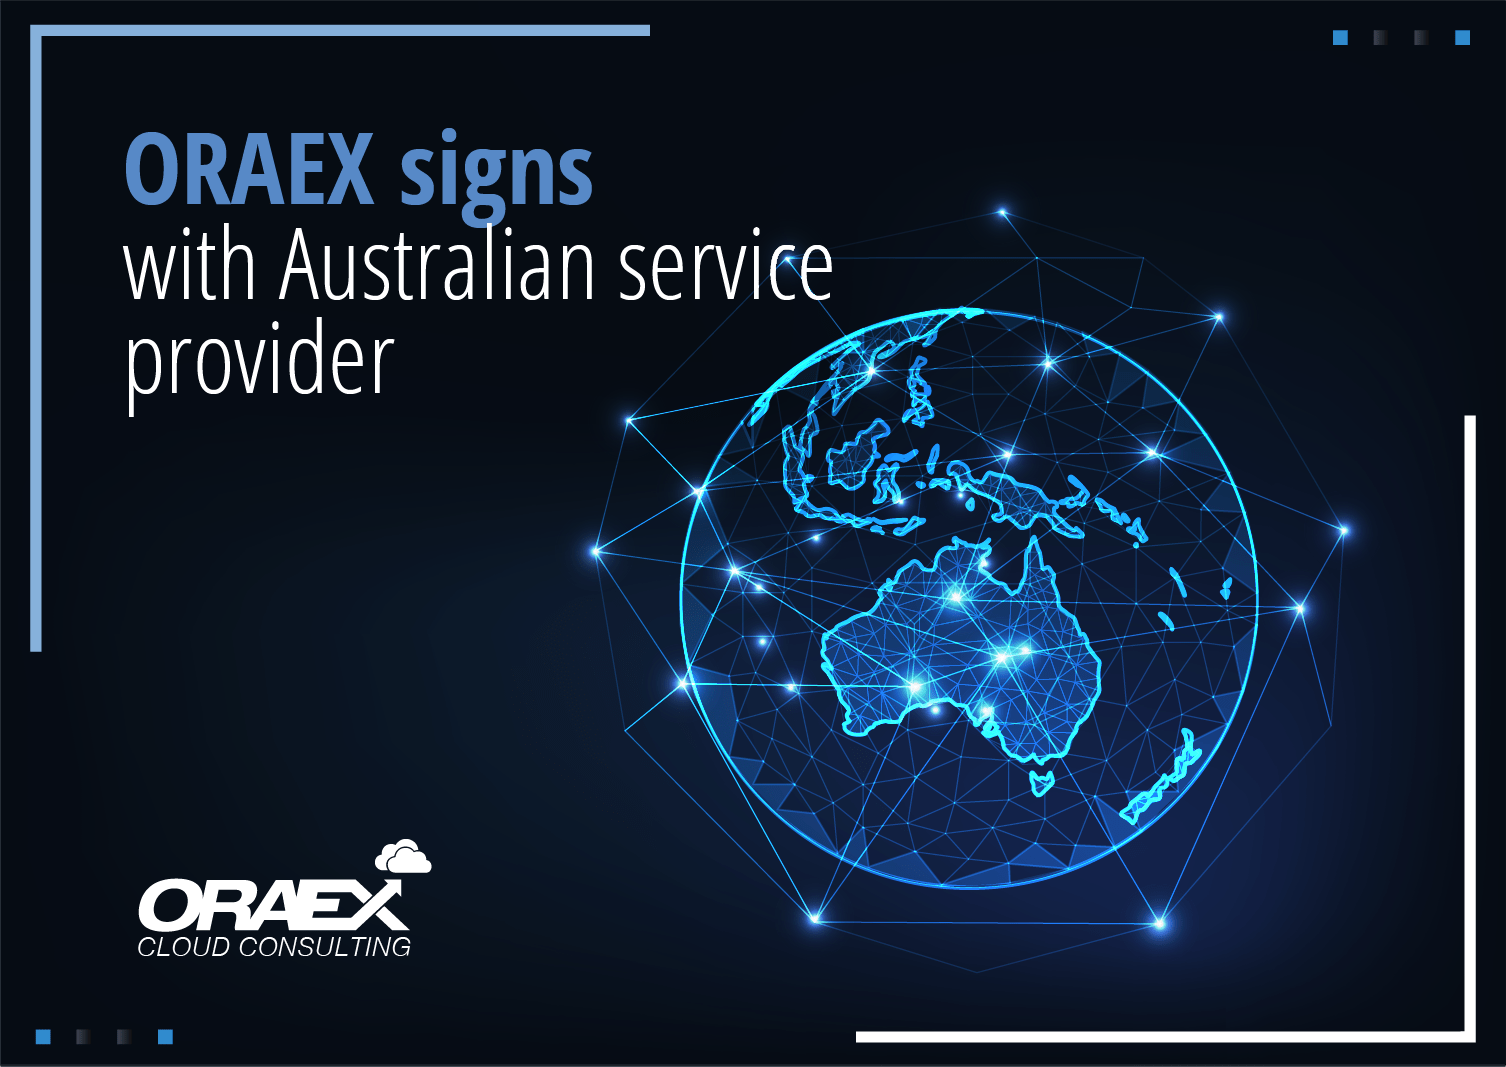 ORAEX signs  with Australian service provider